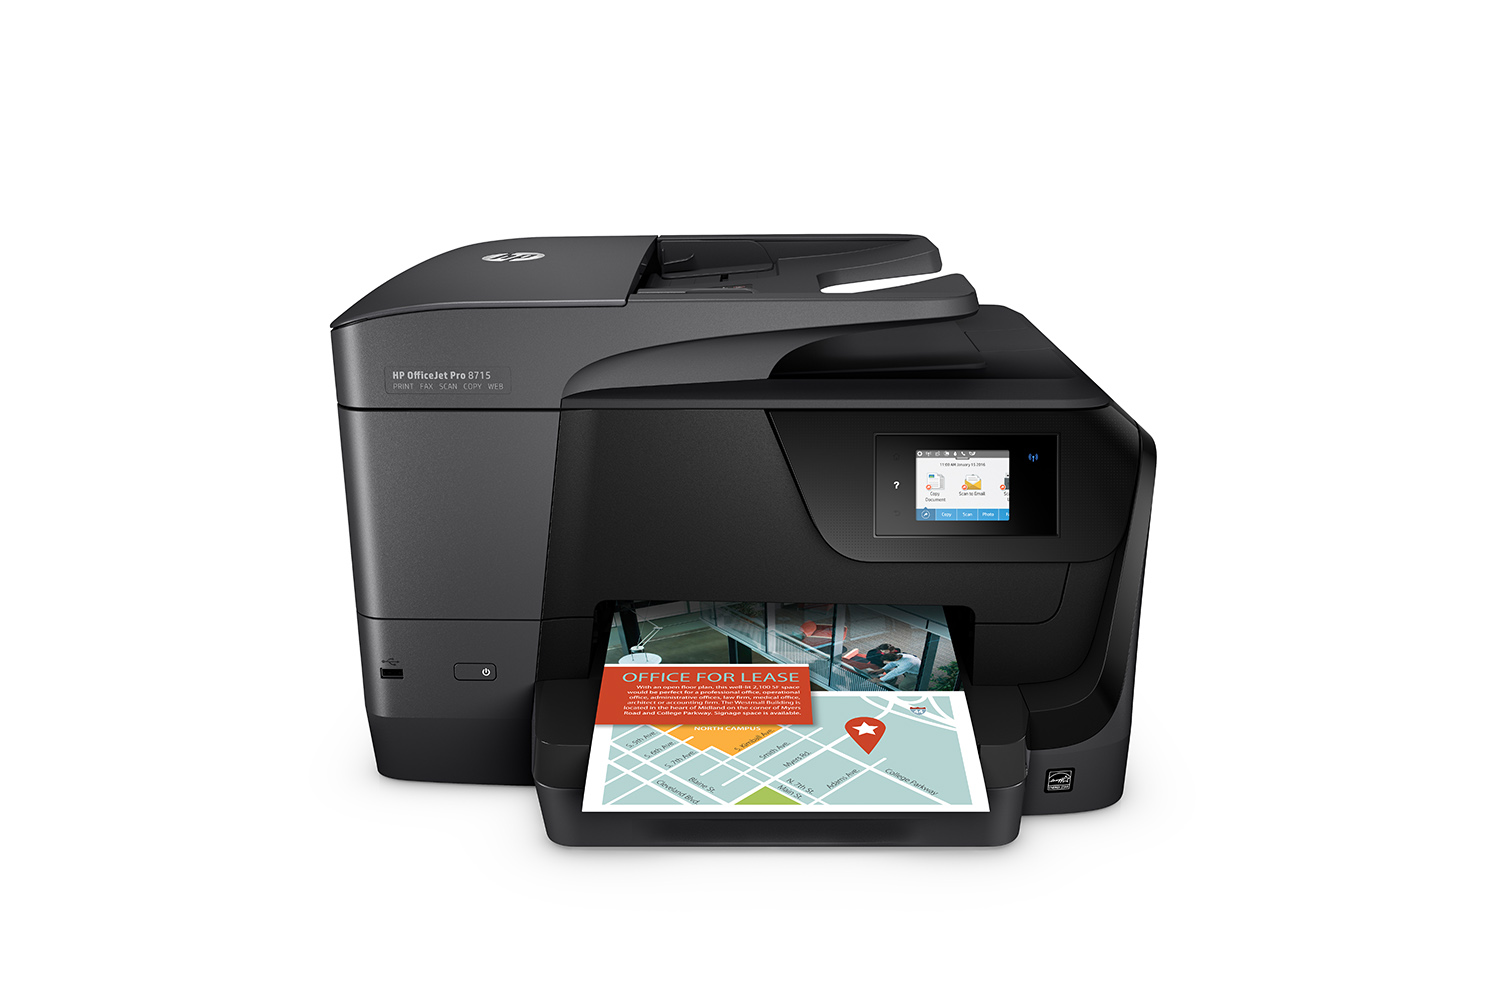 DRIVER FOR HP OFFICE JET PRO 8715